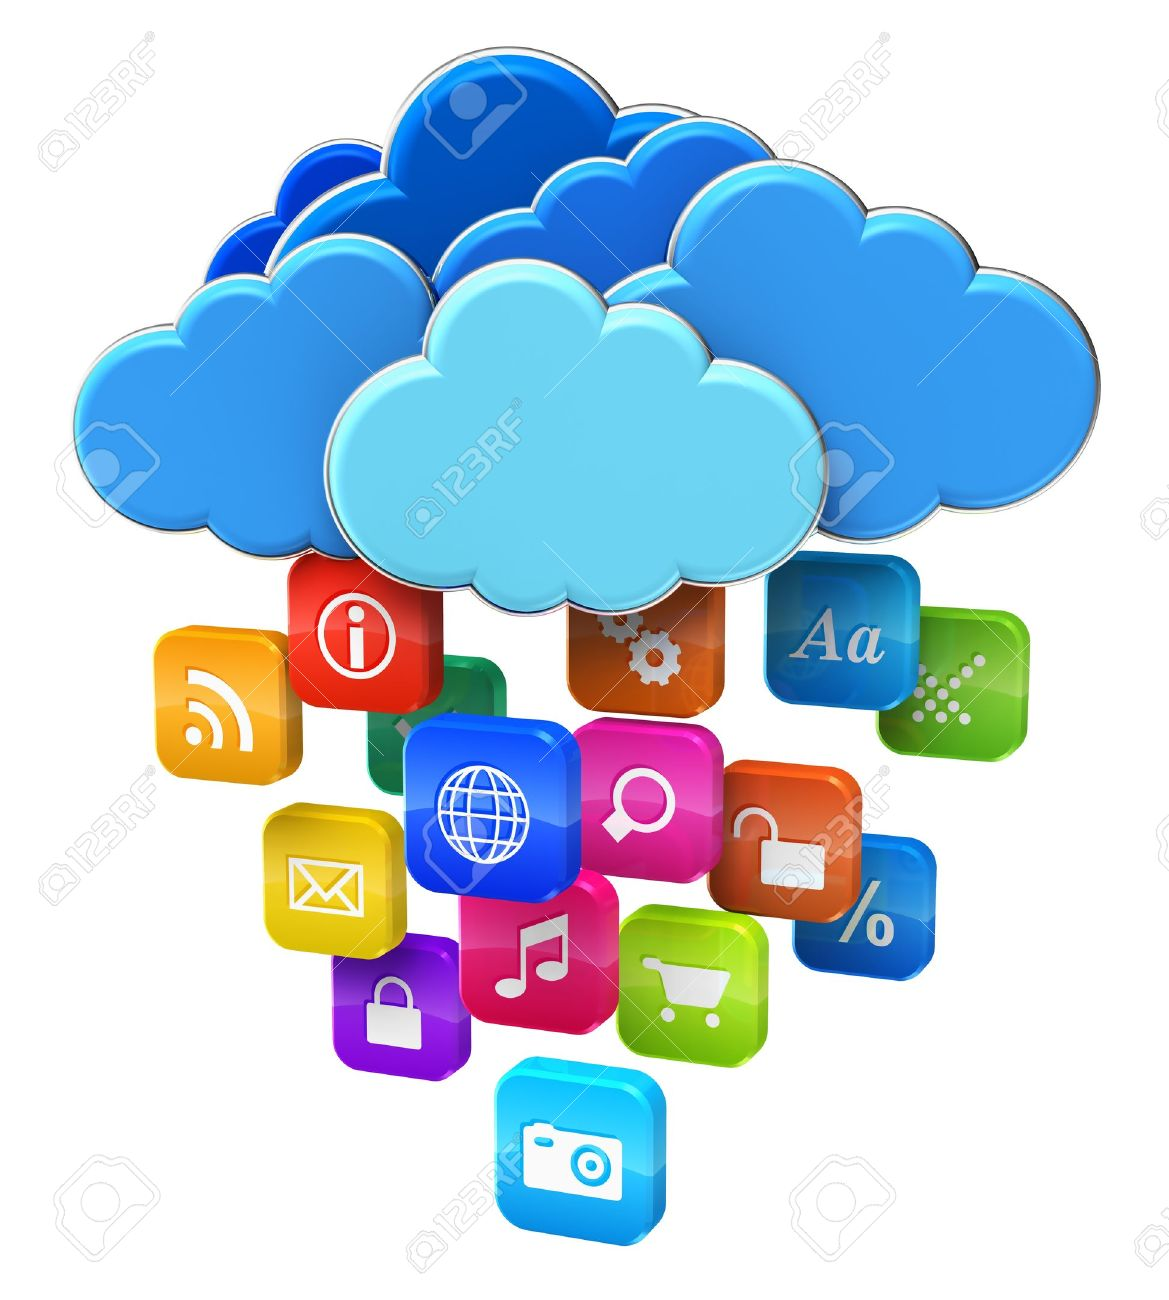 Cloud computing and mobility concept  blue glossy clouds with lot of color application icons isolated on white background Stock Photo - 13968792